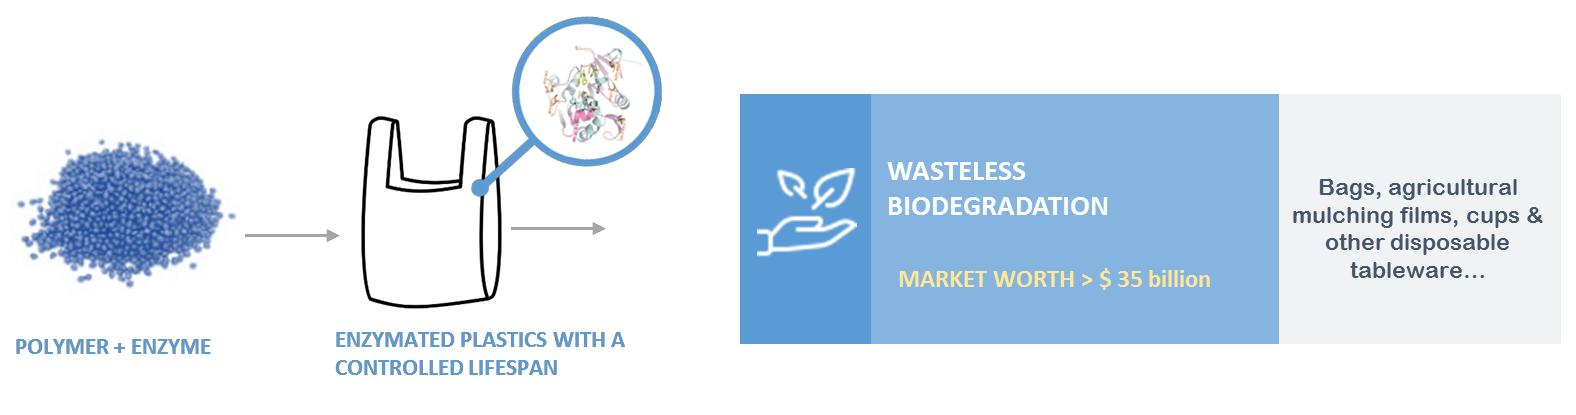 © CARBIOS - Biodegradation technology dedicated to single-use plastics